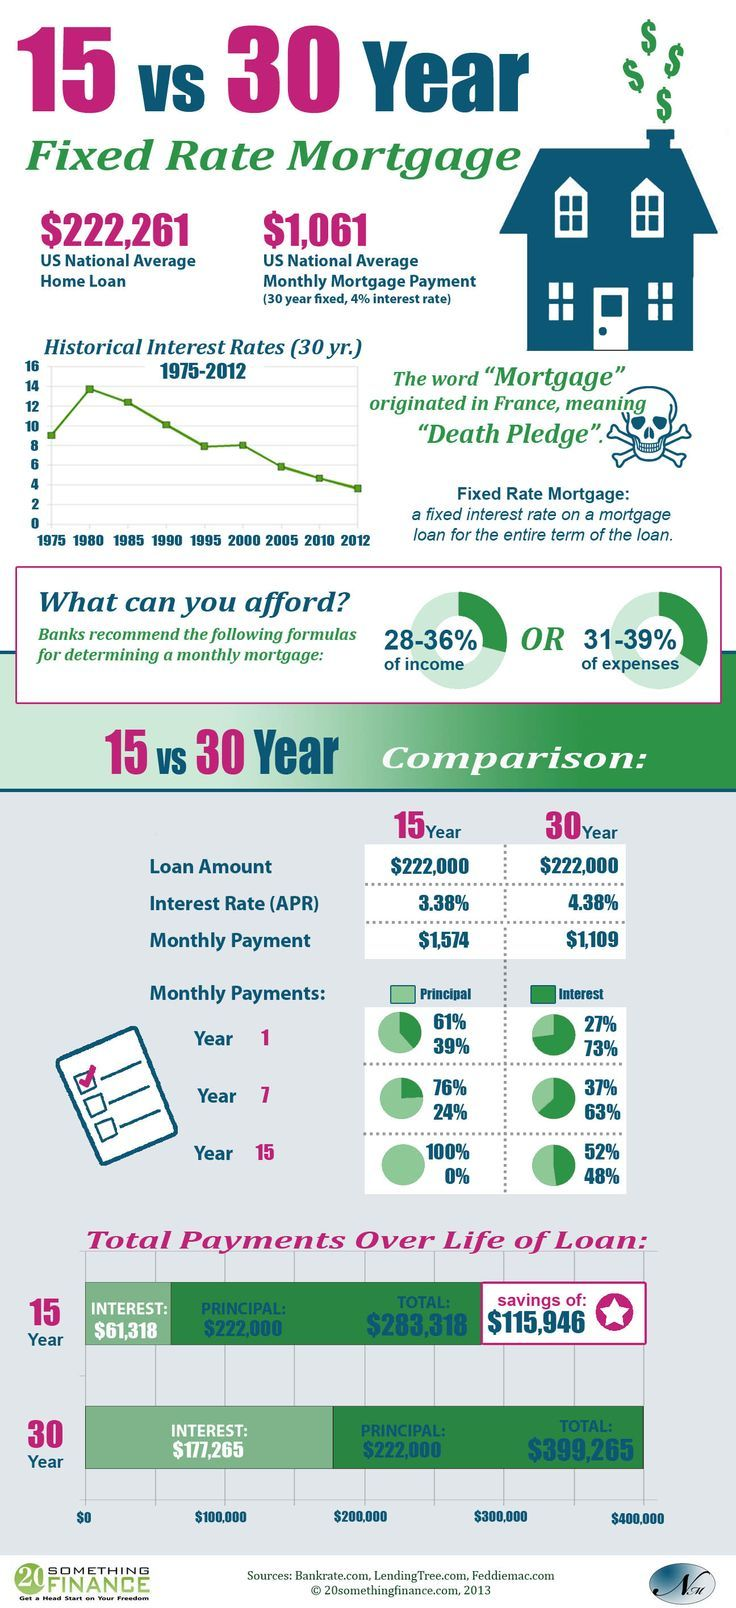 15 Vs 30 Year Mortgage In An Infographic 30 Year Mortgage Fixed Rate Mortgage Mortgage Tips